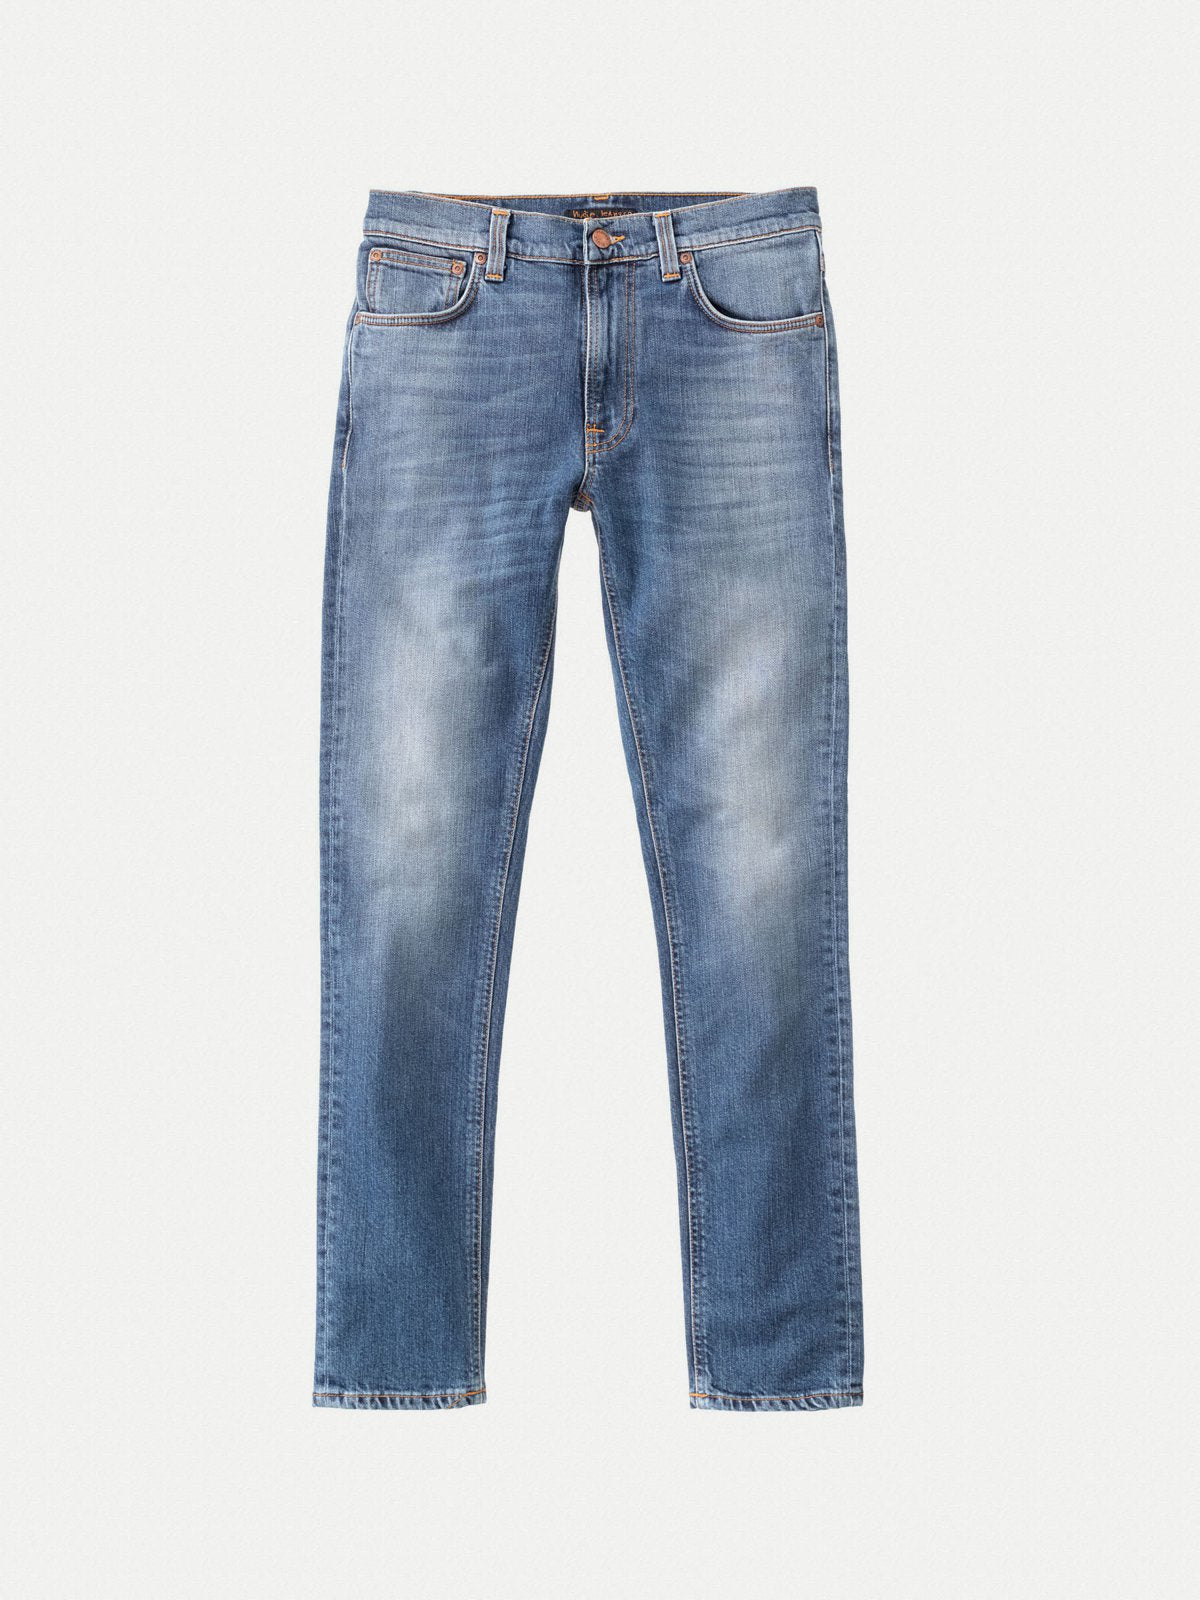 Nudie Jeans Lean Dean Pale Favorite